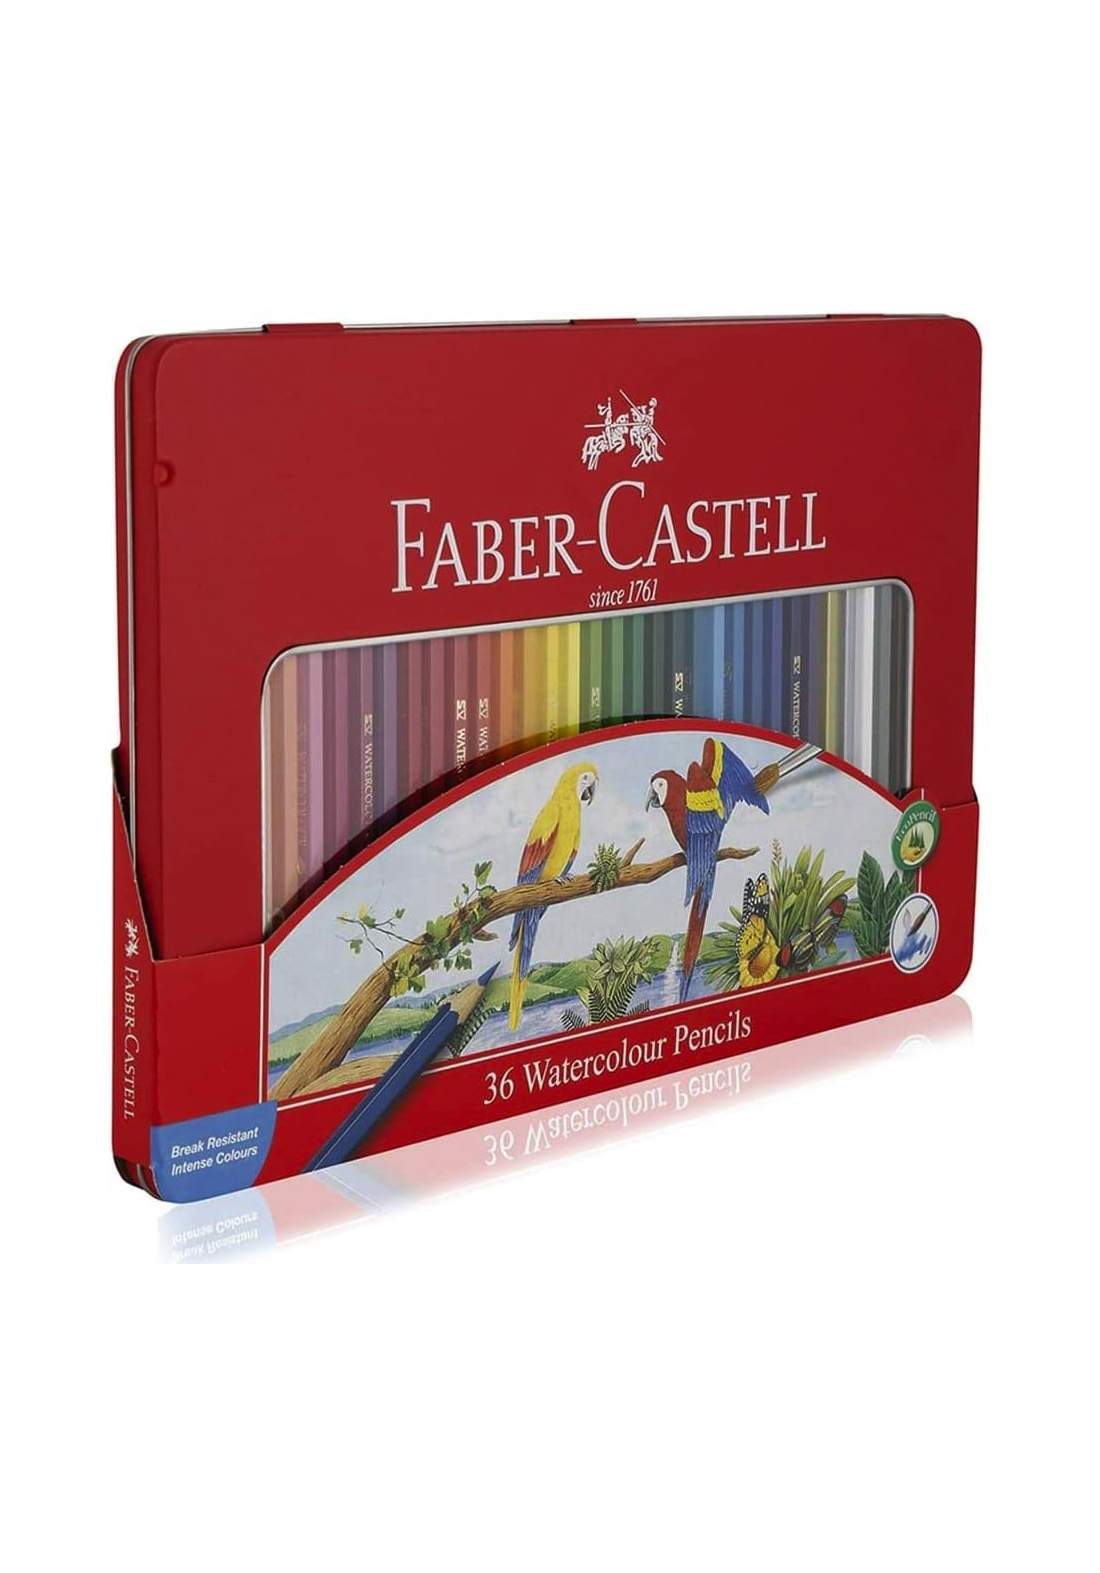 Faber Castell 36 Water Pencil Color with Iron Box أقلام تلوين مائية 36 لون